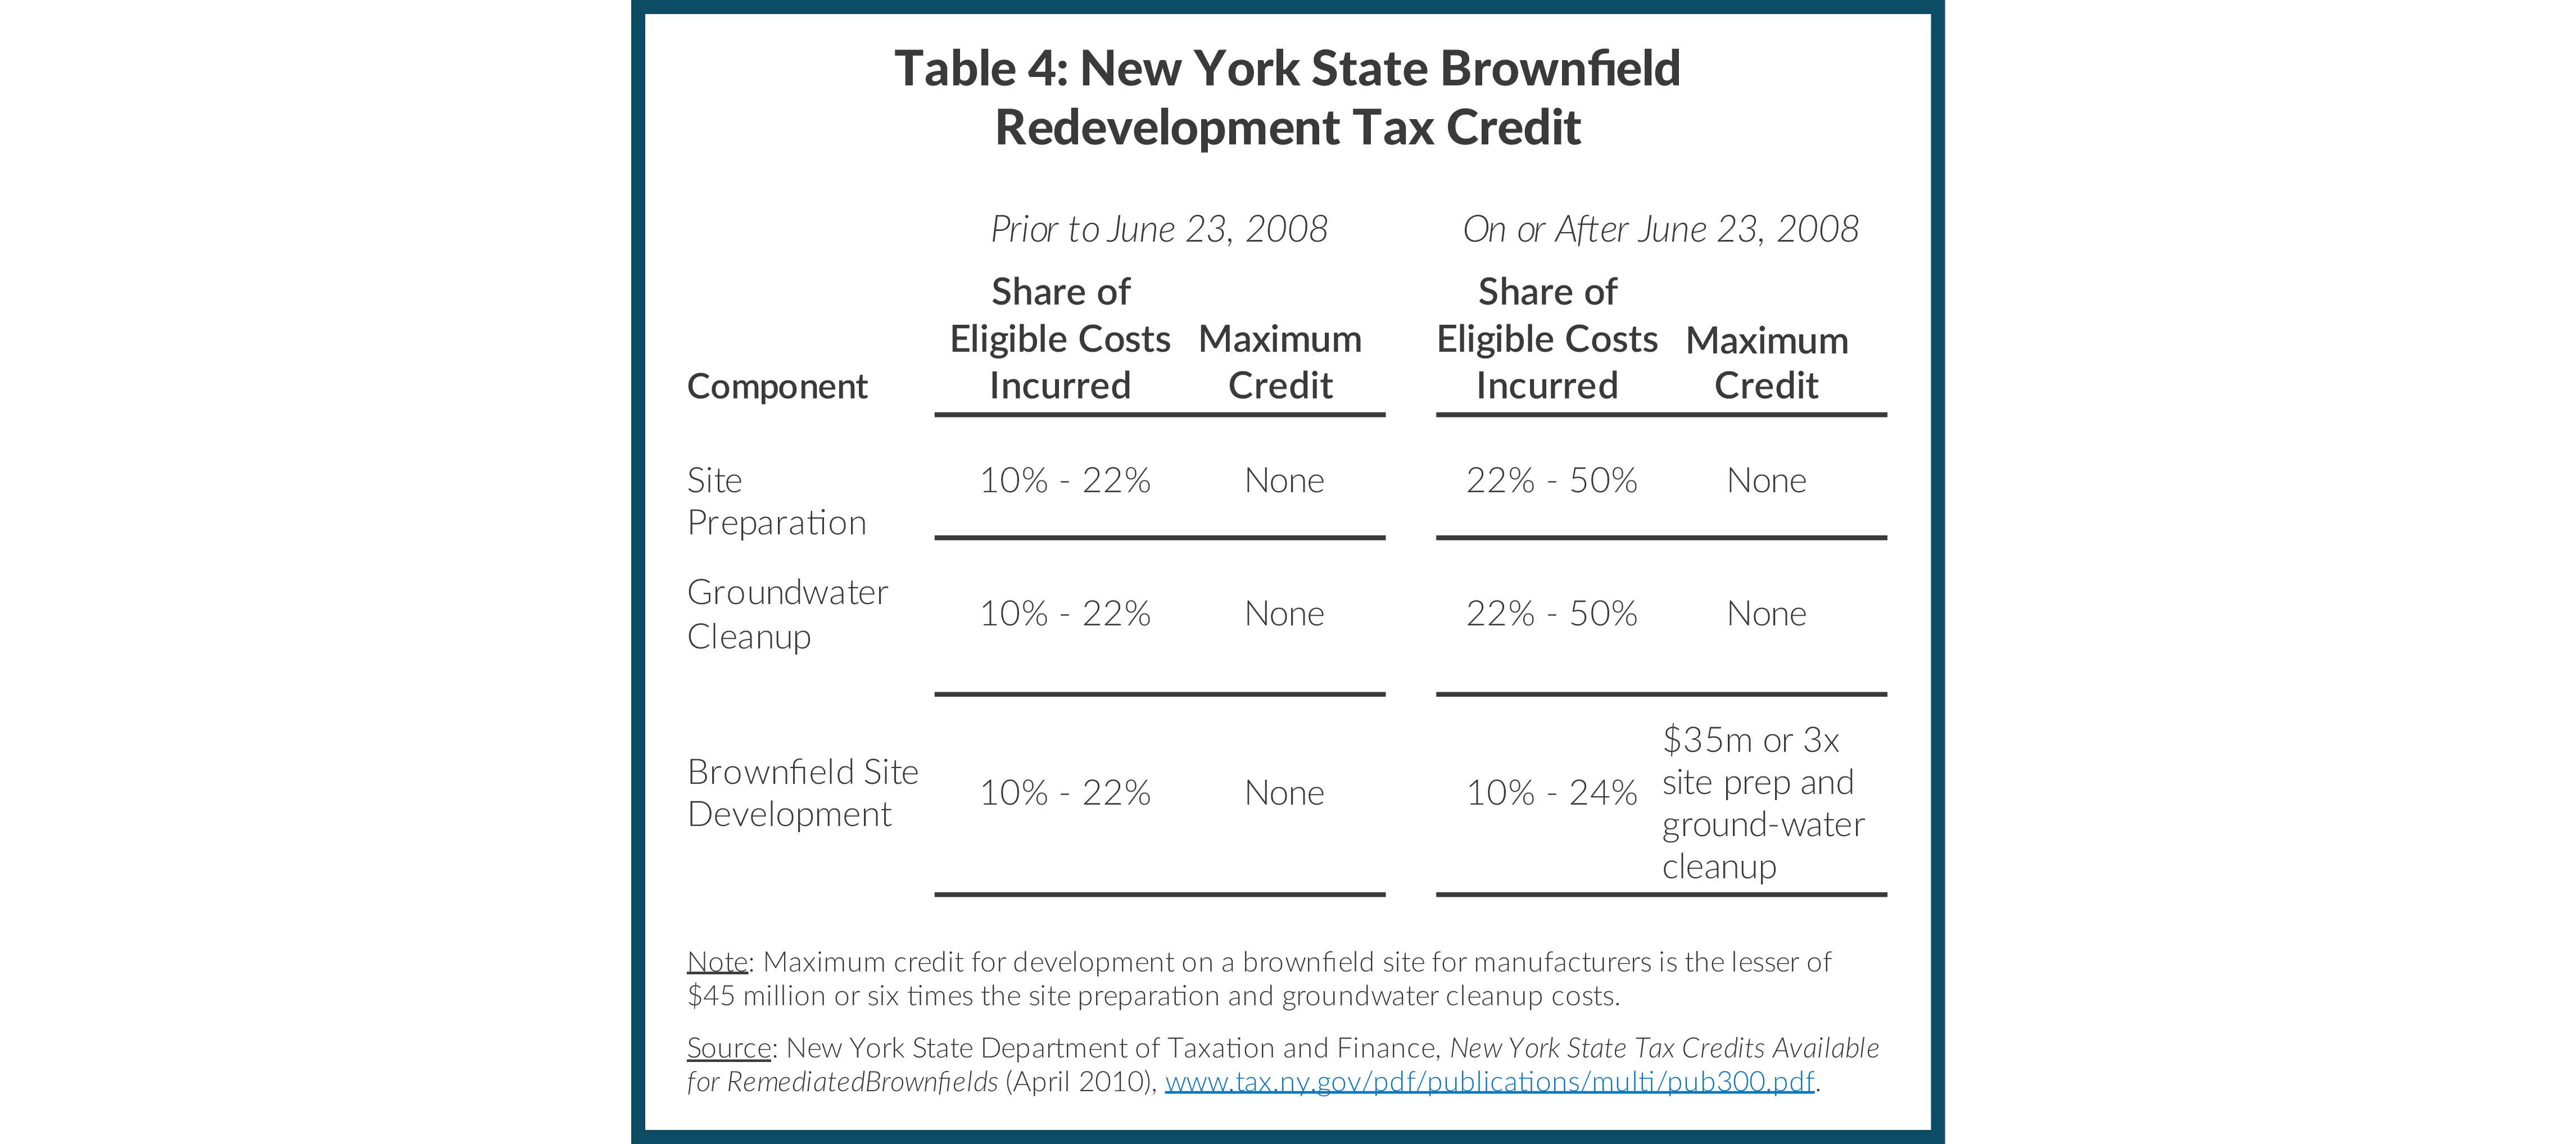 Table 4: New York State Brownfield Redevelopment Tax Credit